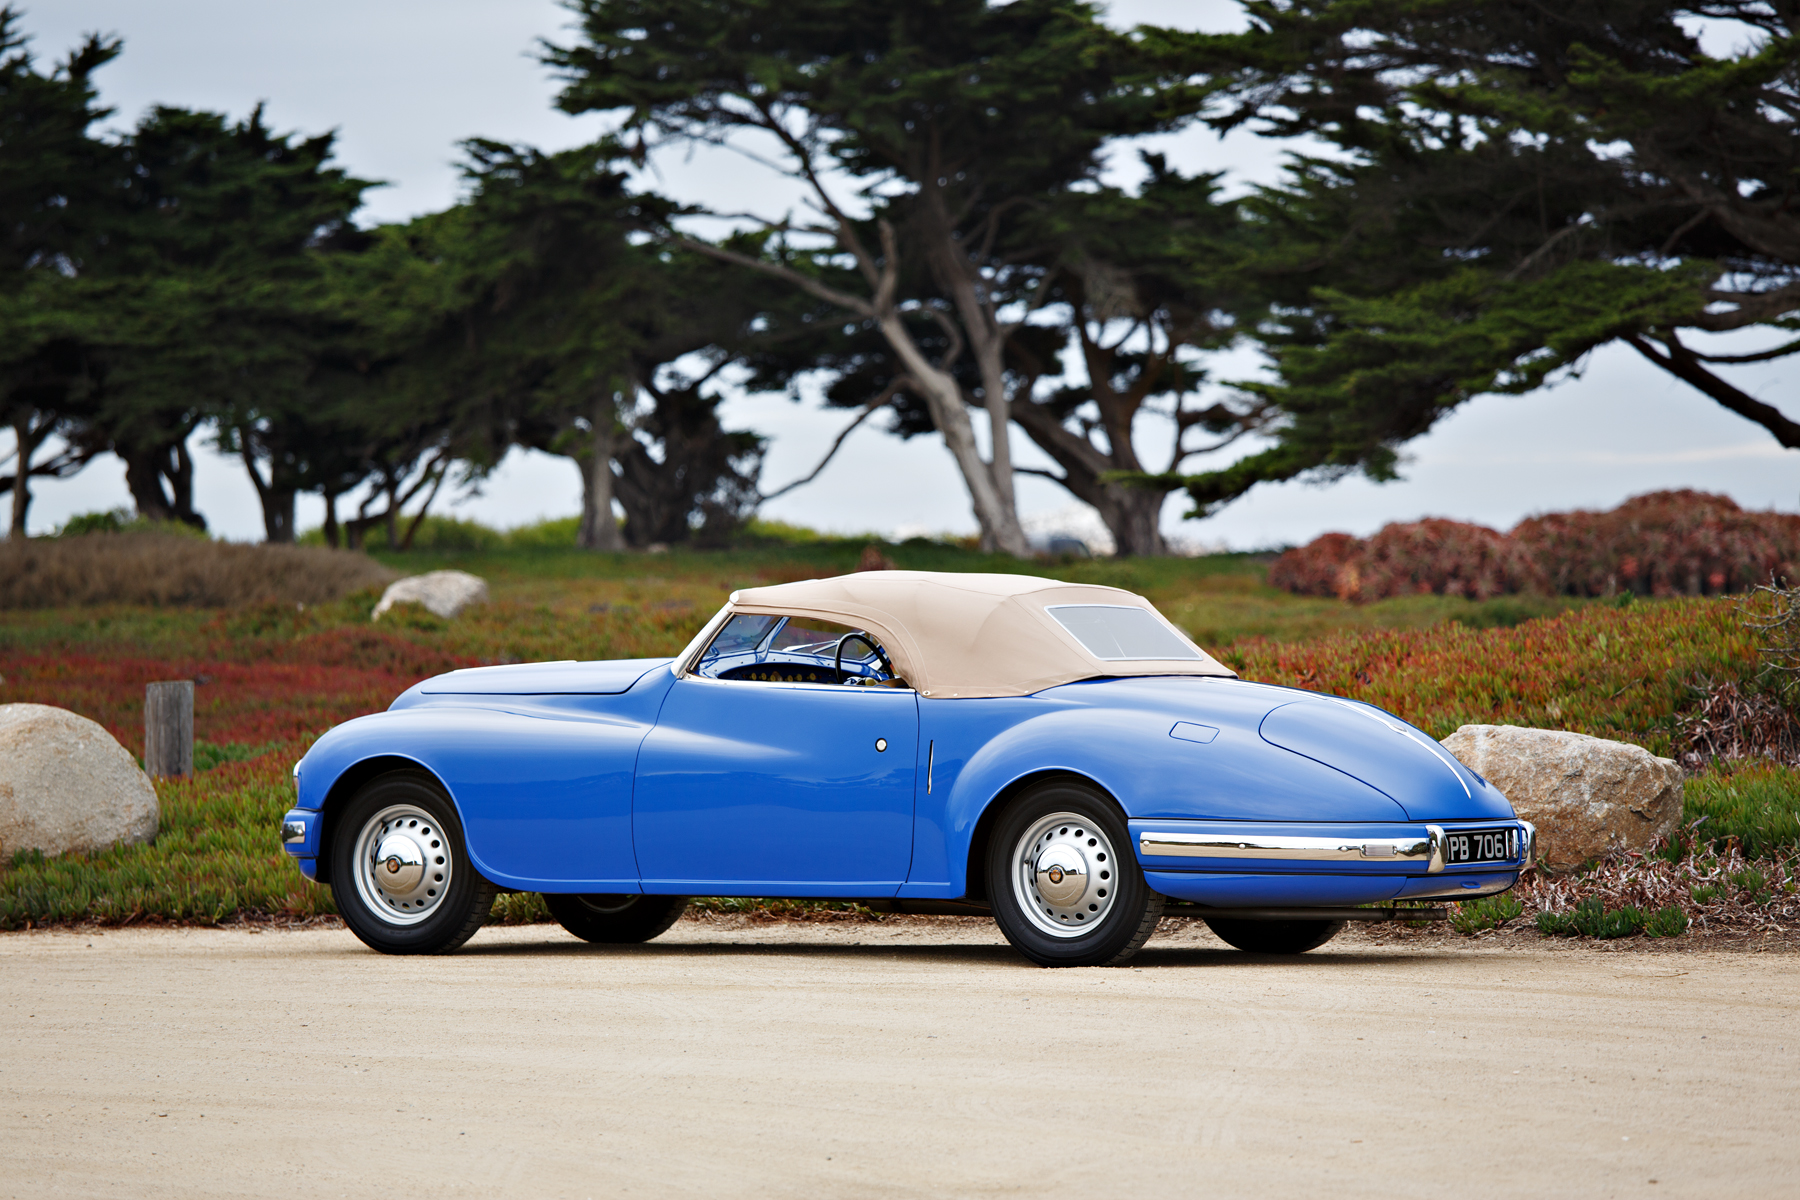 1949 Bristol 402 Cabriolet profile with the top up